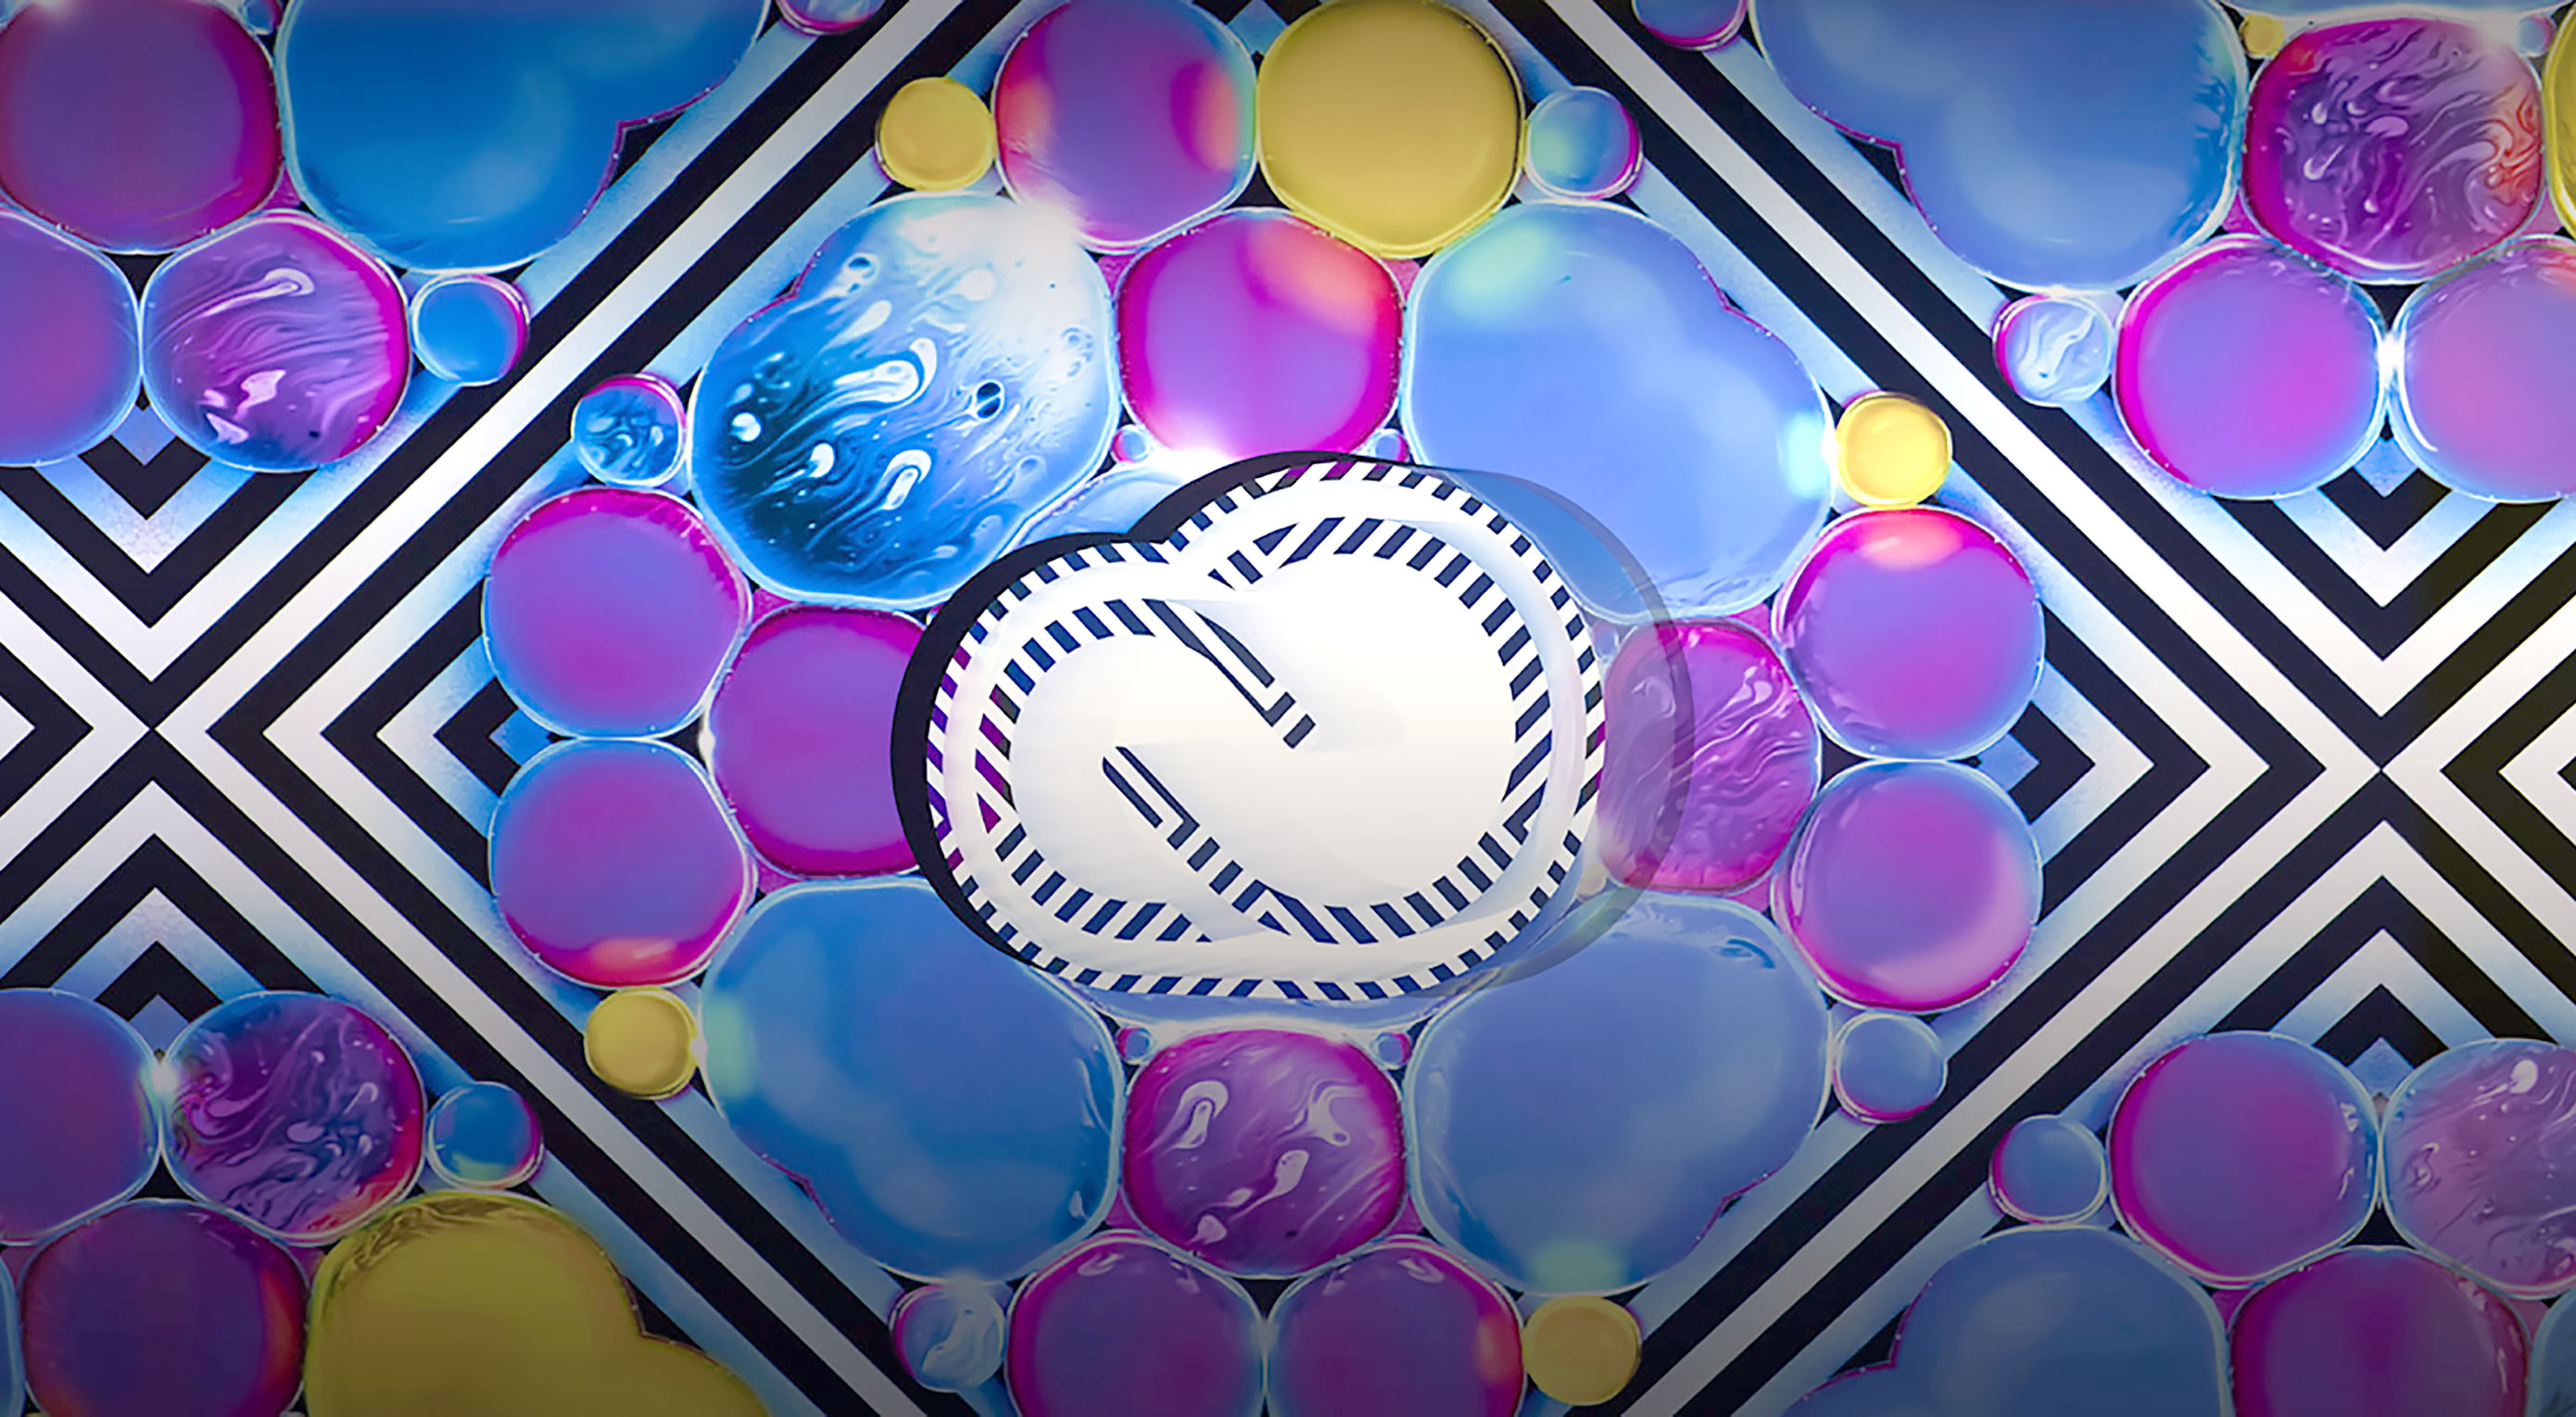 Adobe reveal major Creative Cloud update